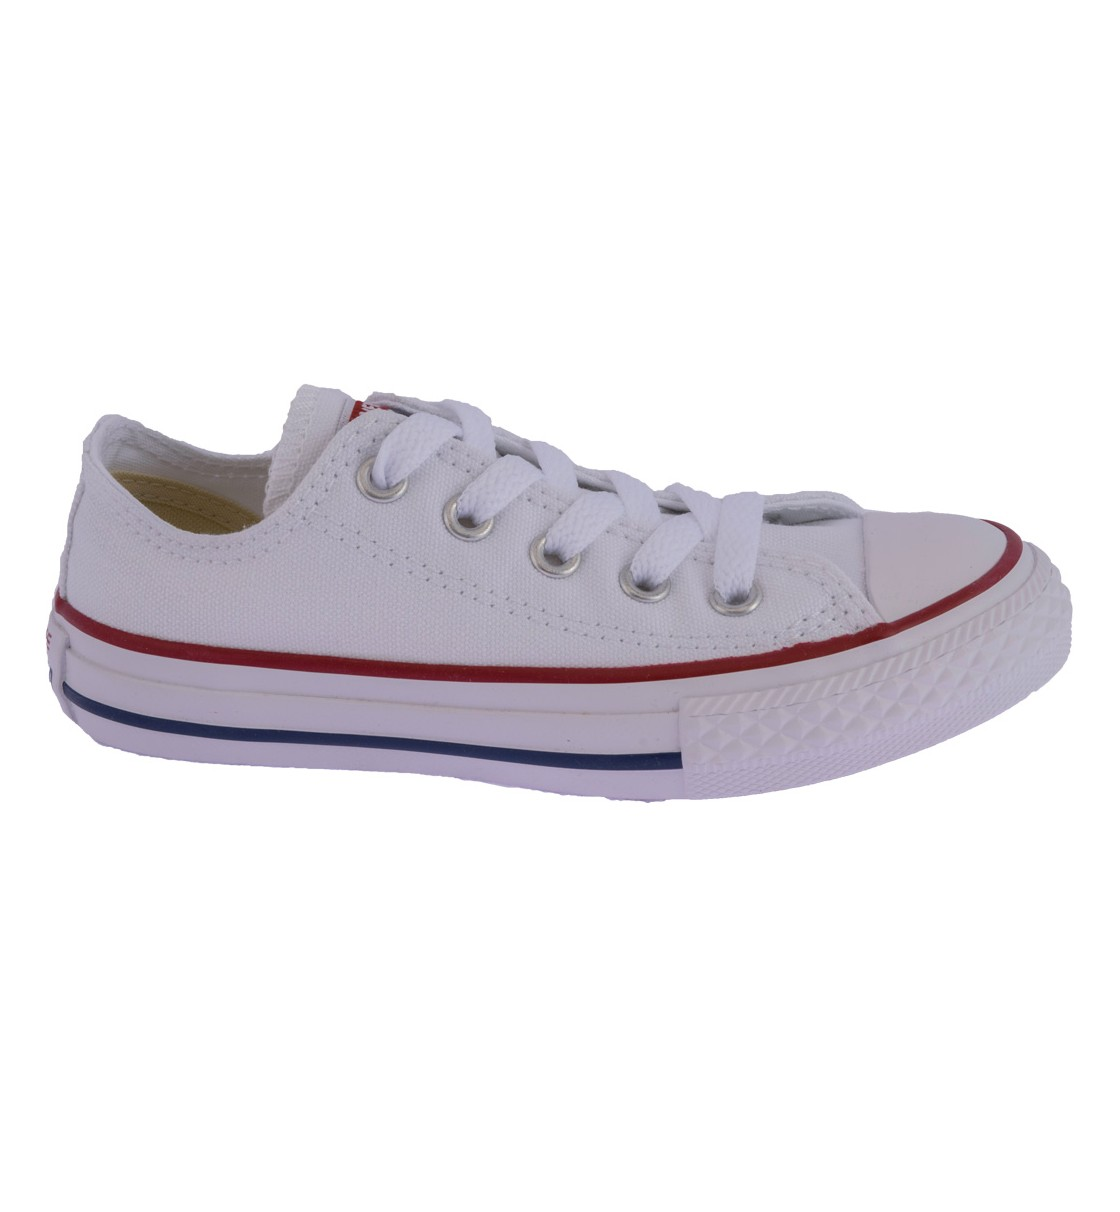 Converse Παιδικό Παπούτσι Μόδας Chuck Taylor All Star Ox 3J256C